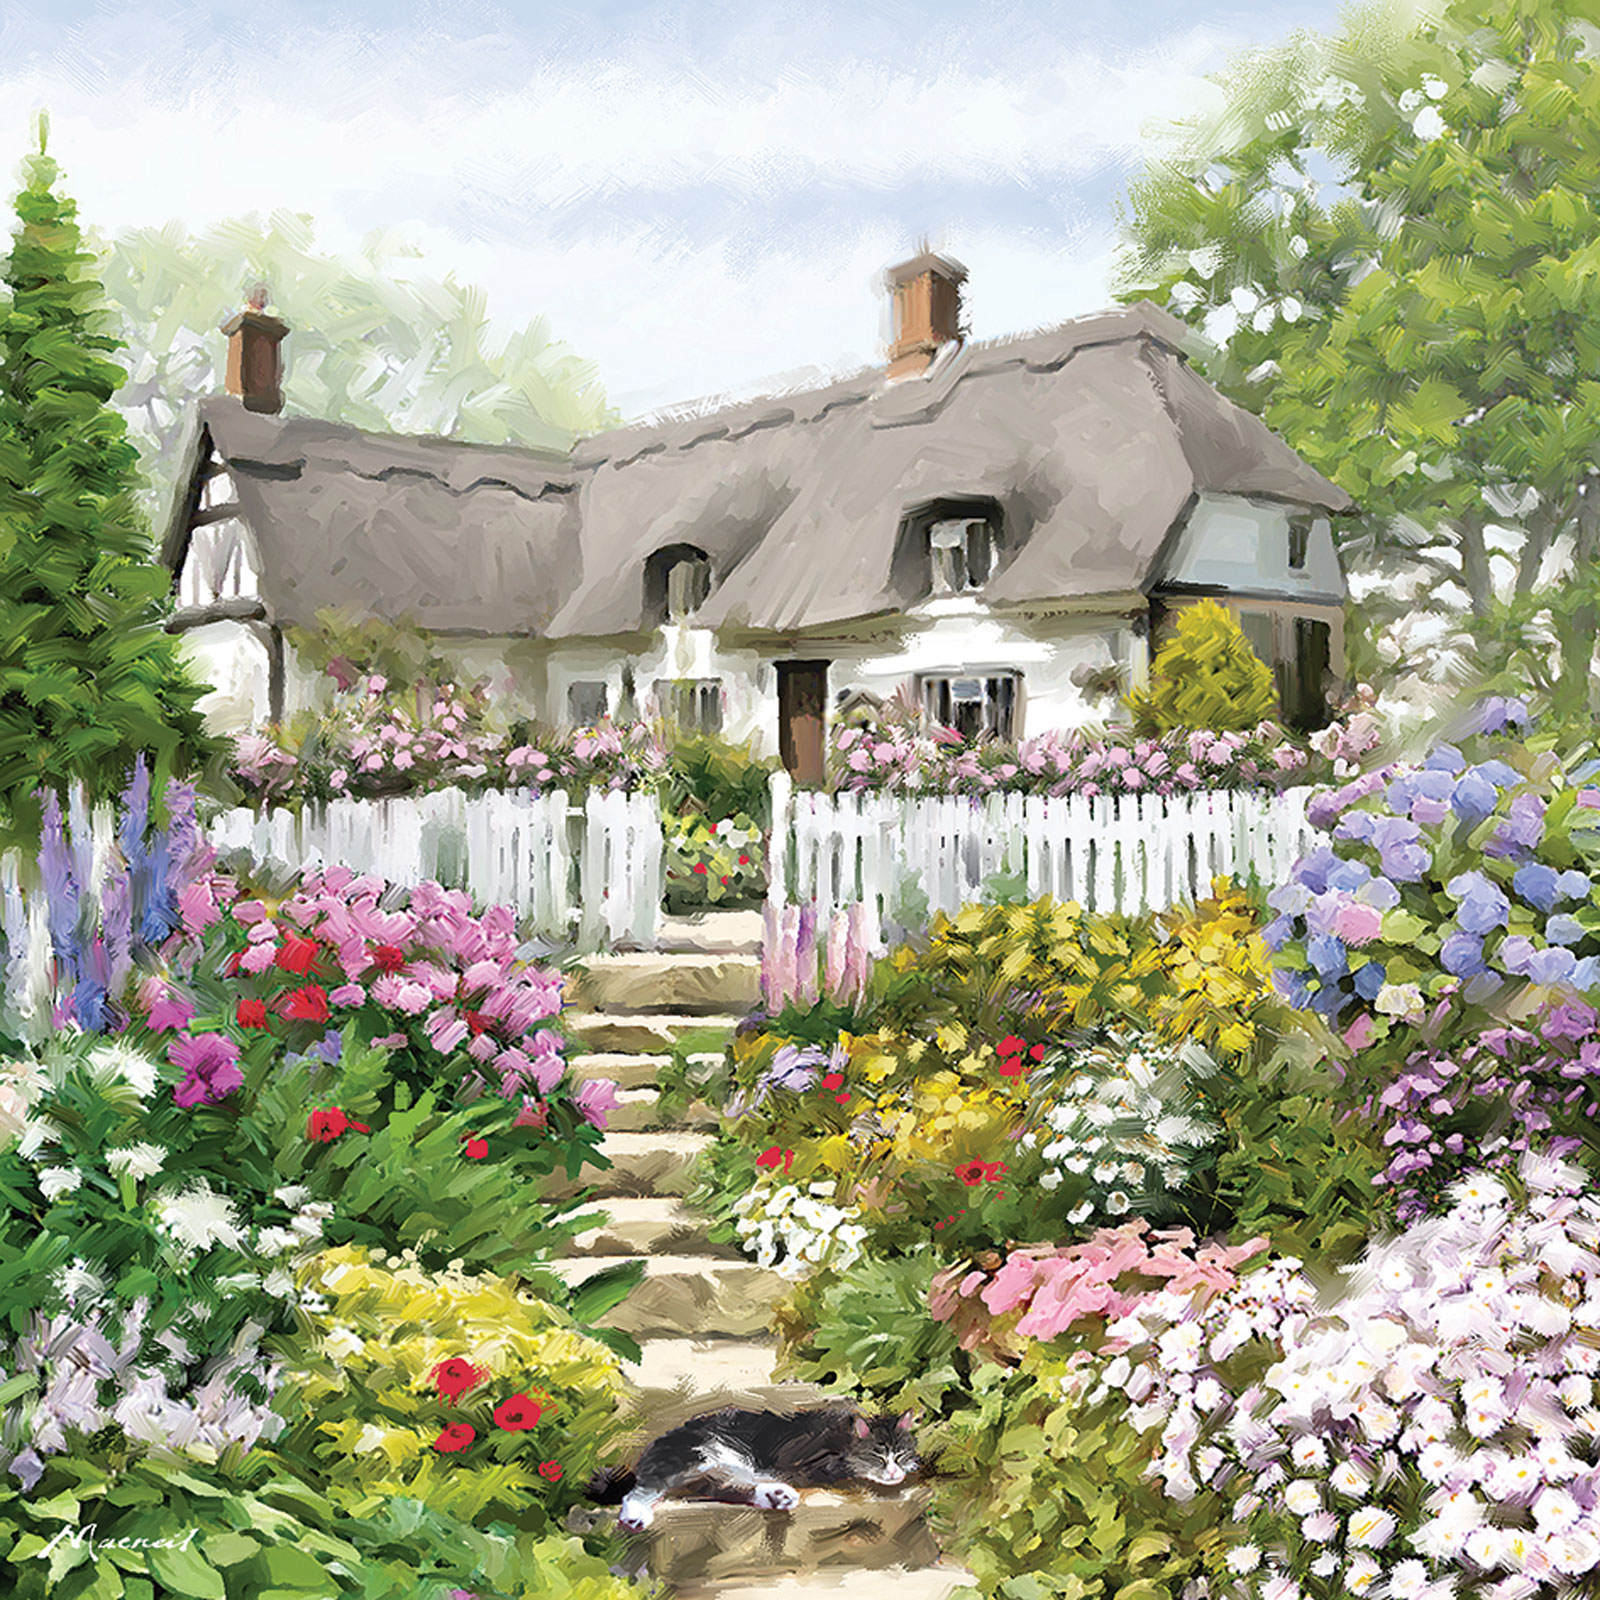 otter-house-puzzle-country-cottage-1000-teile-puzzle-otter-house-puzzle-74133